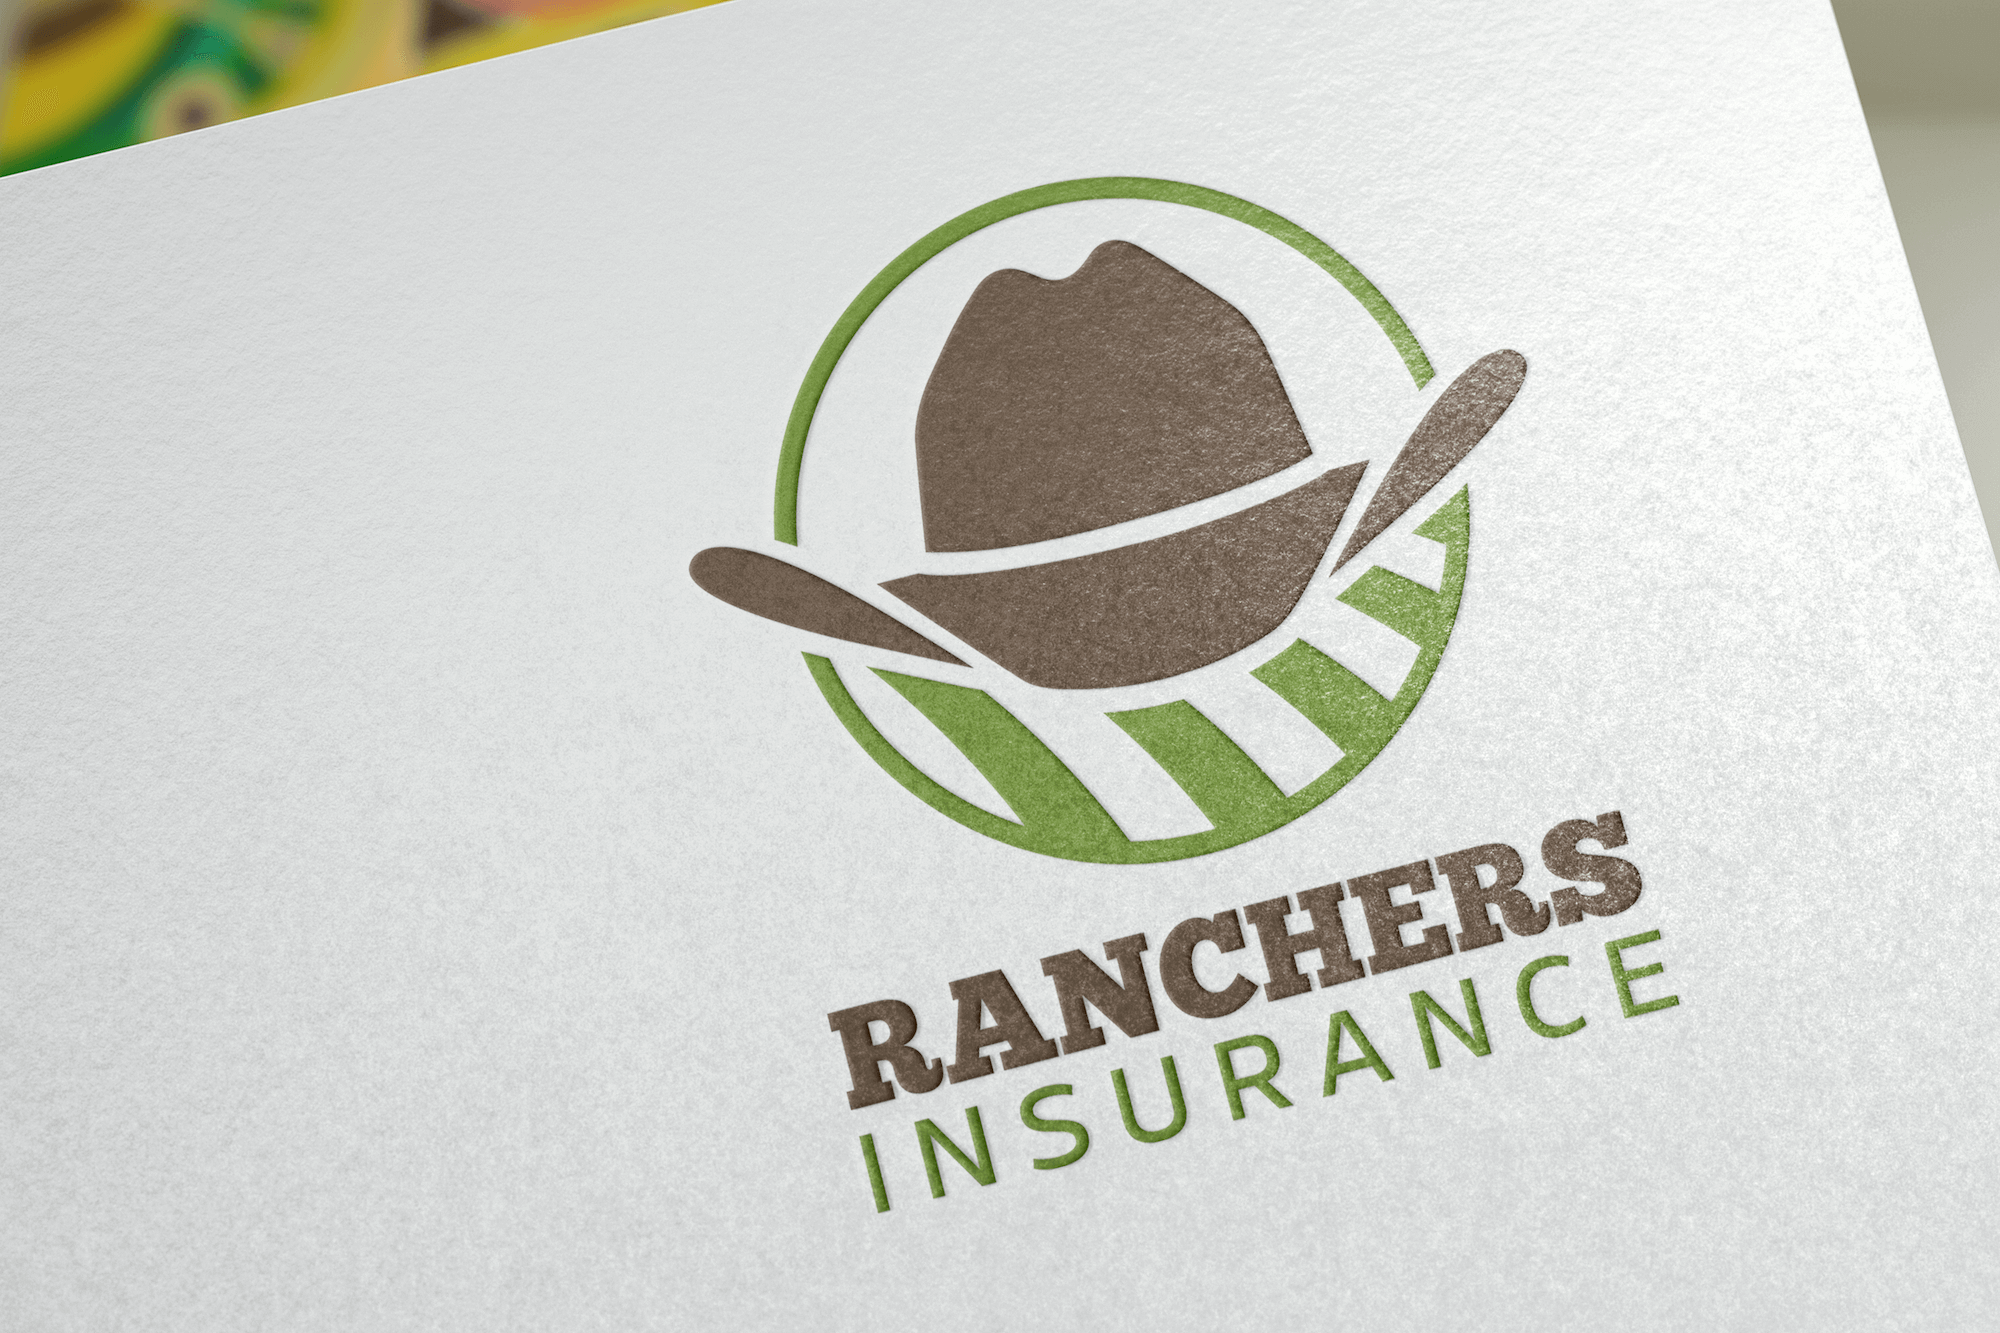 Ranchers Insurance Logo Design Project